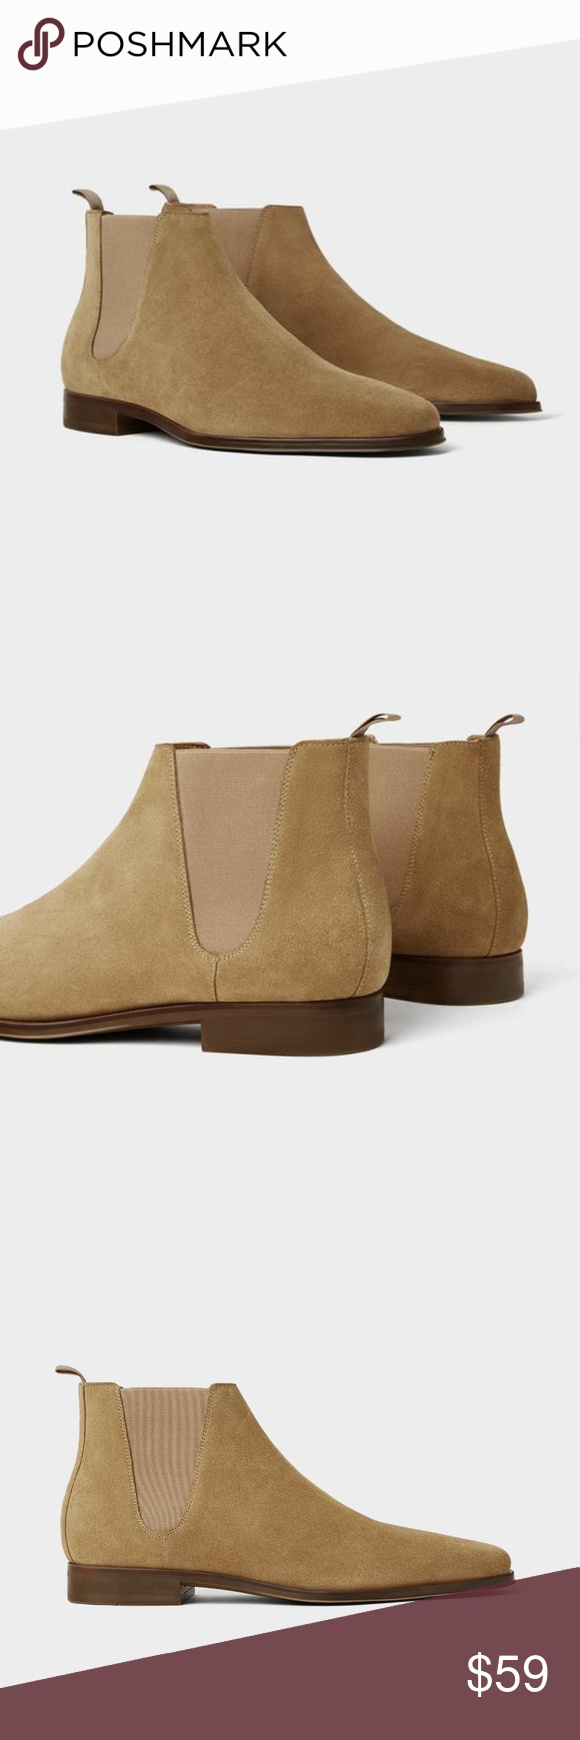 ZARA Beige leather sporty ankle boots